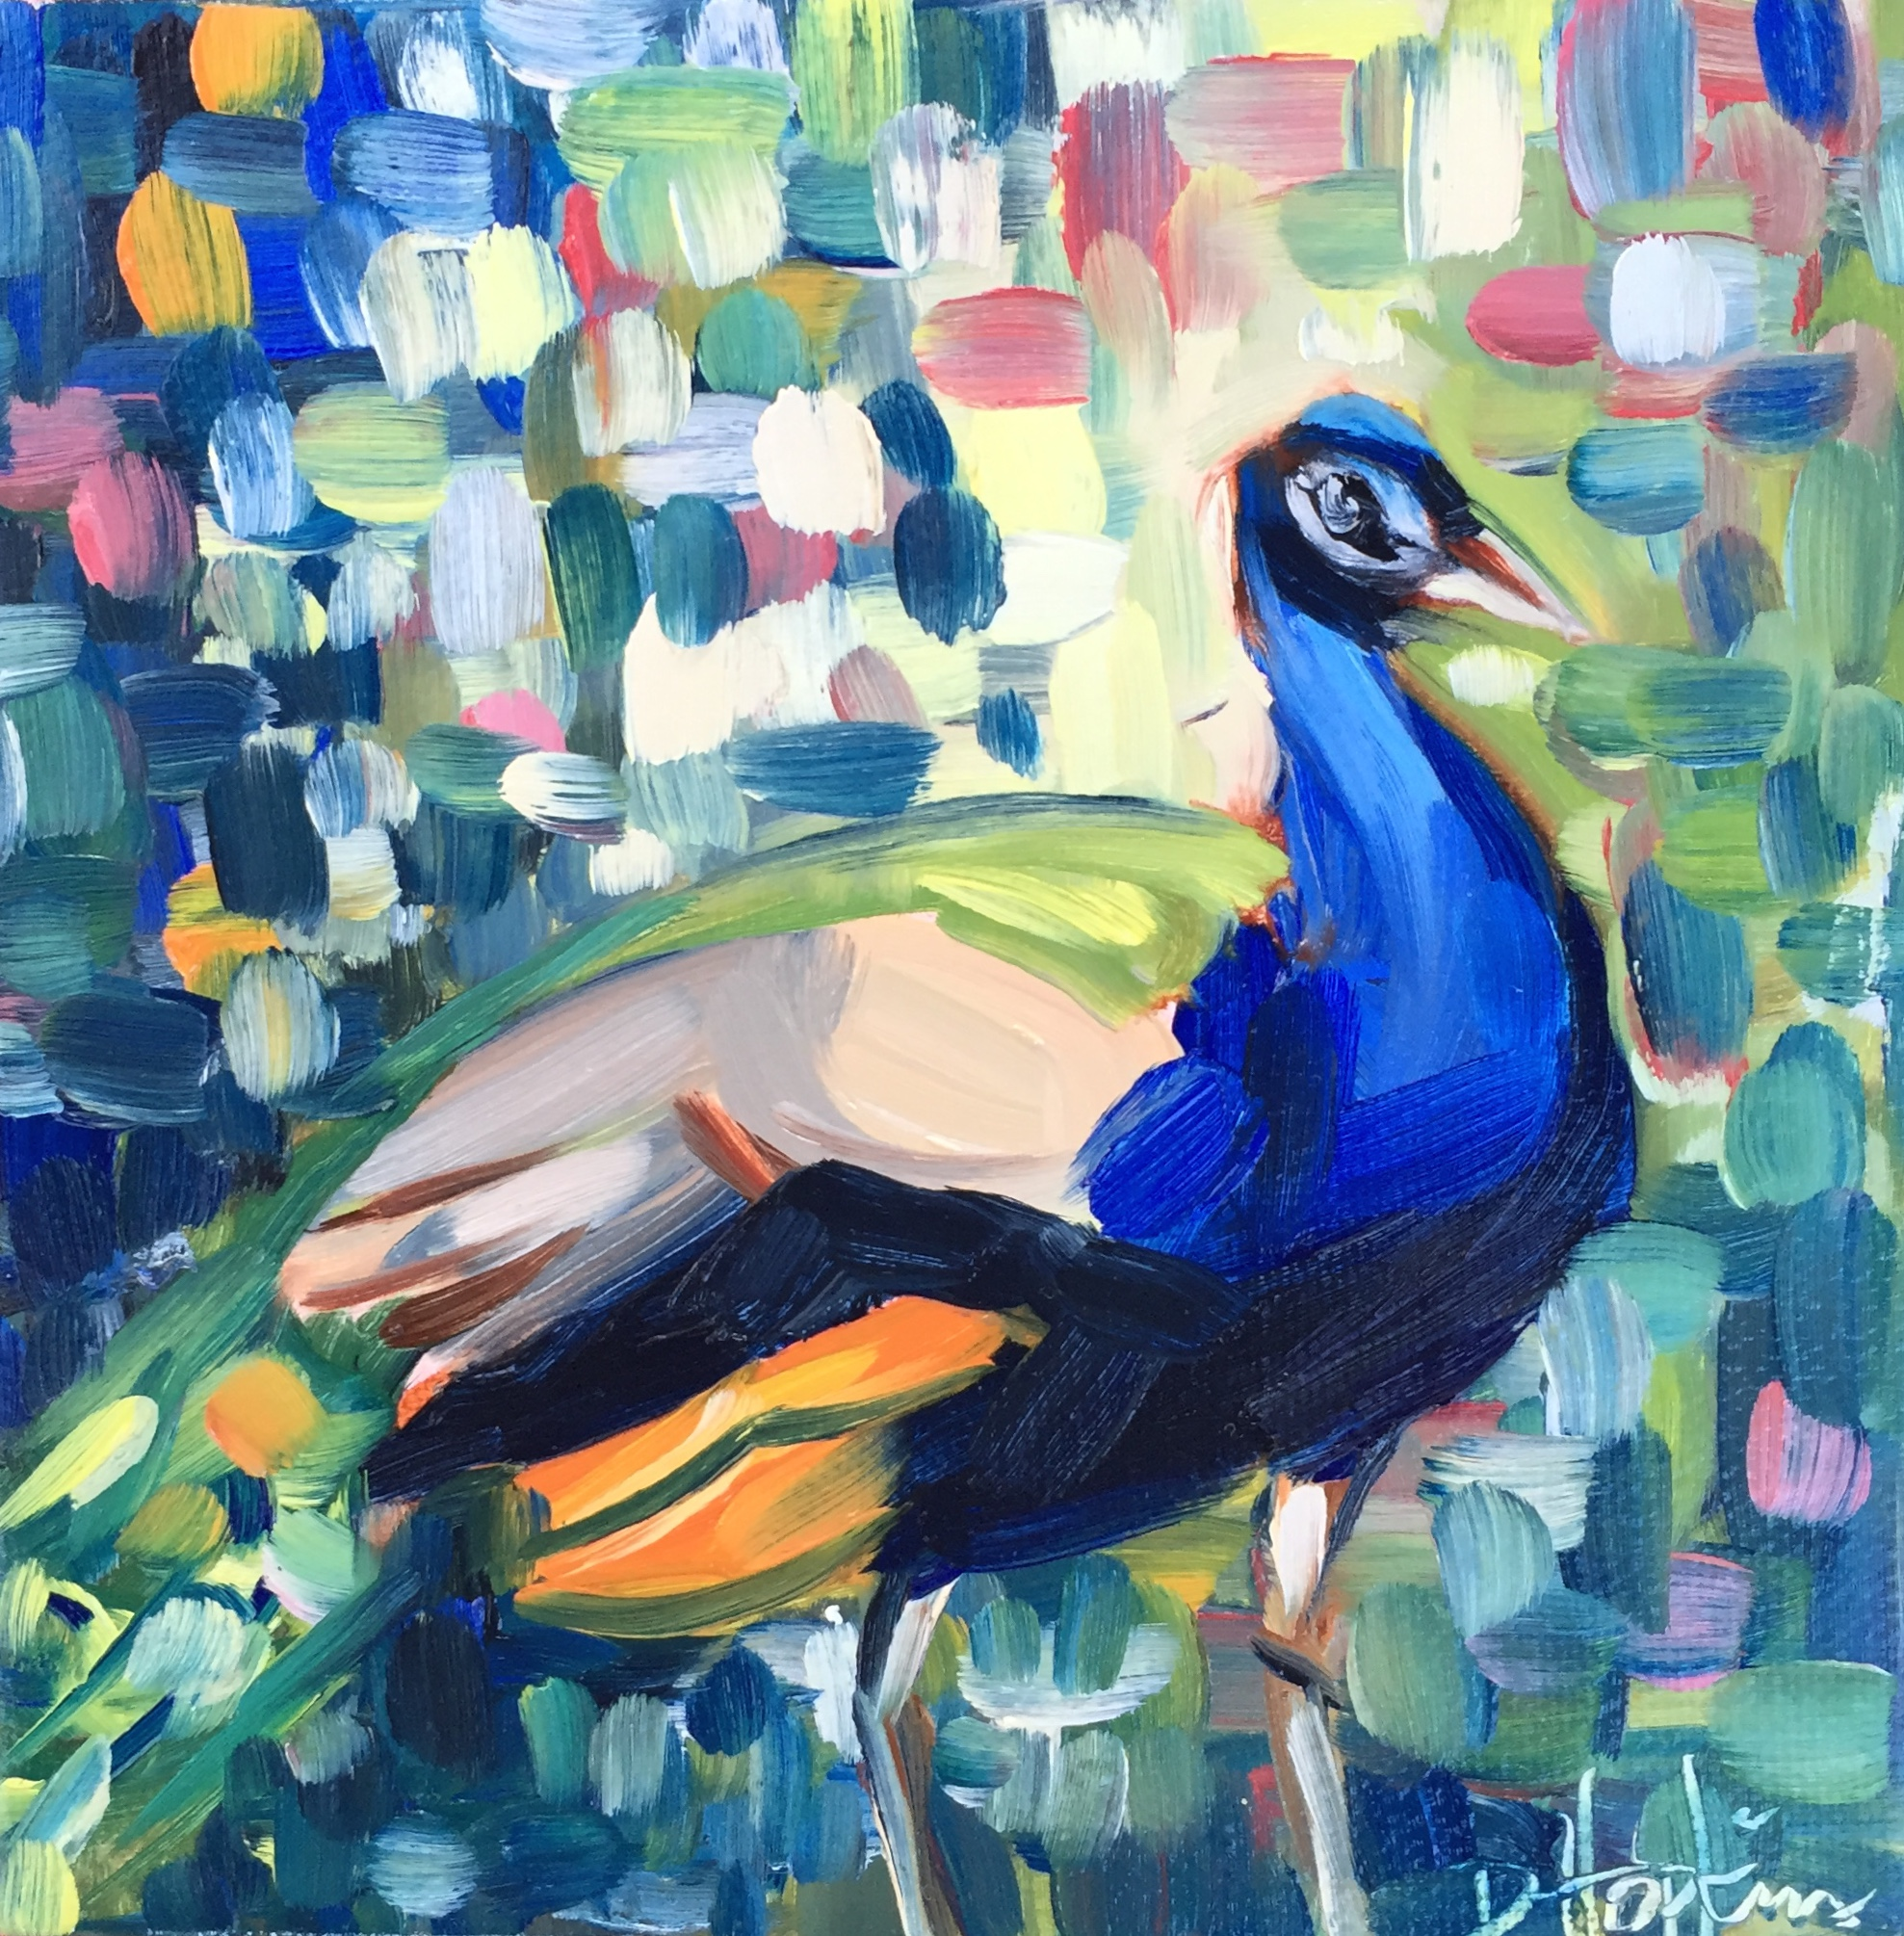 Peacock painting by Louisiana artist Denise Hopkins